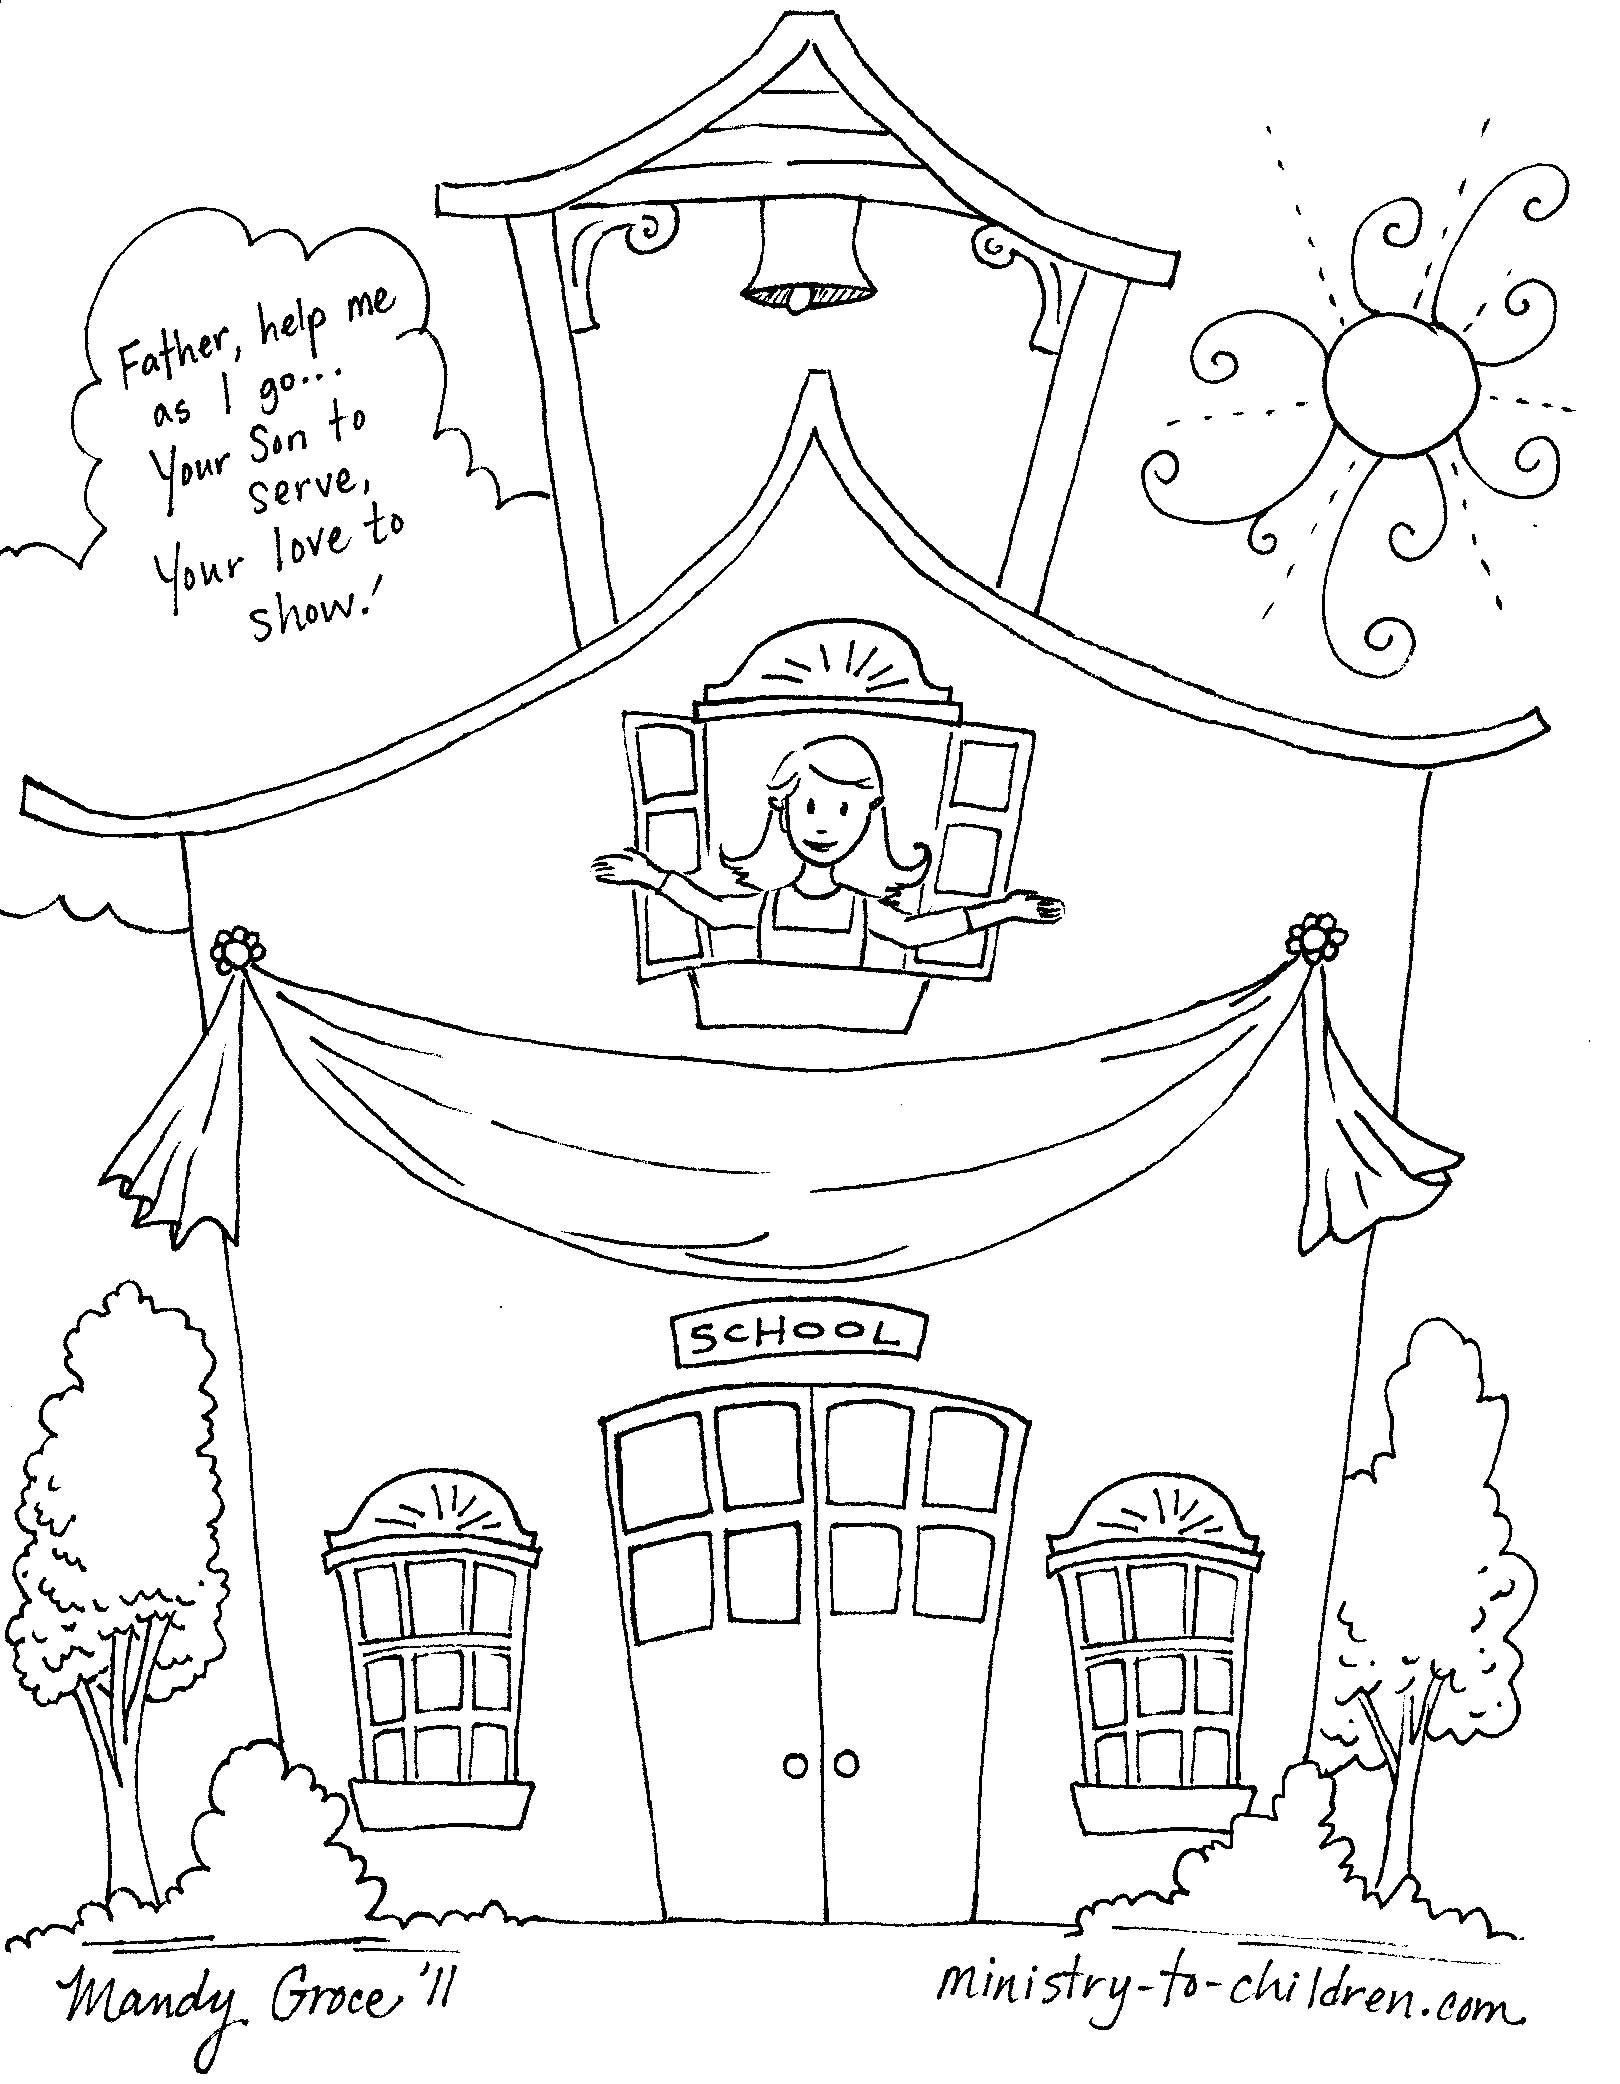 1st day of creation coloring page photo - 1